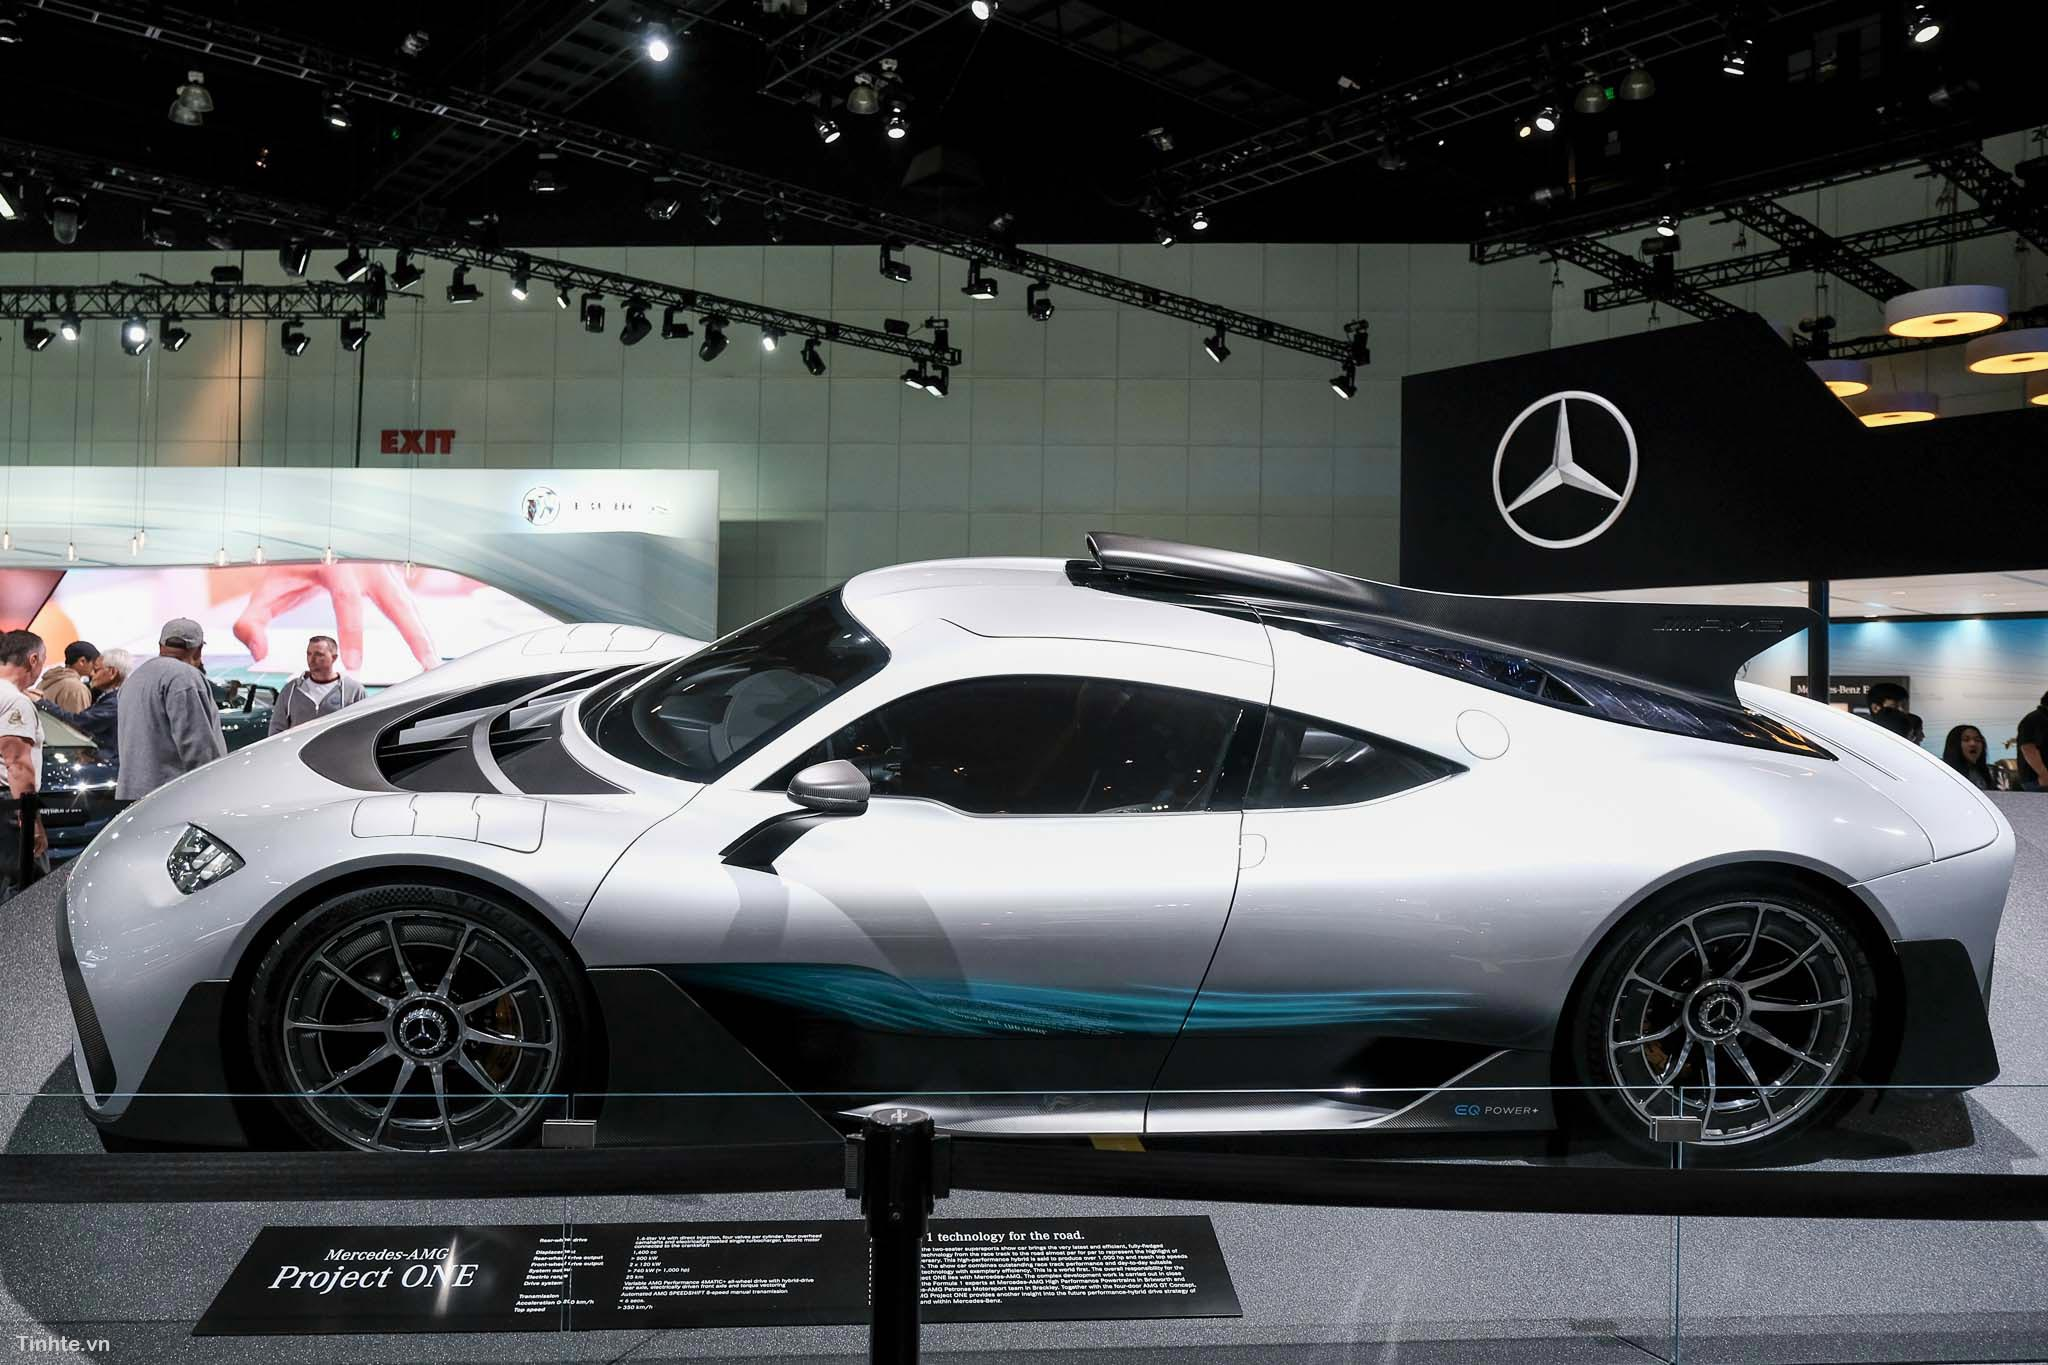 Mercedes-AMG_Project_ONE_xe_tinhte_1.jpg